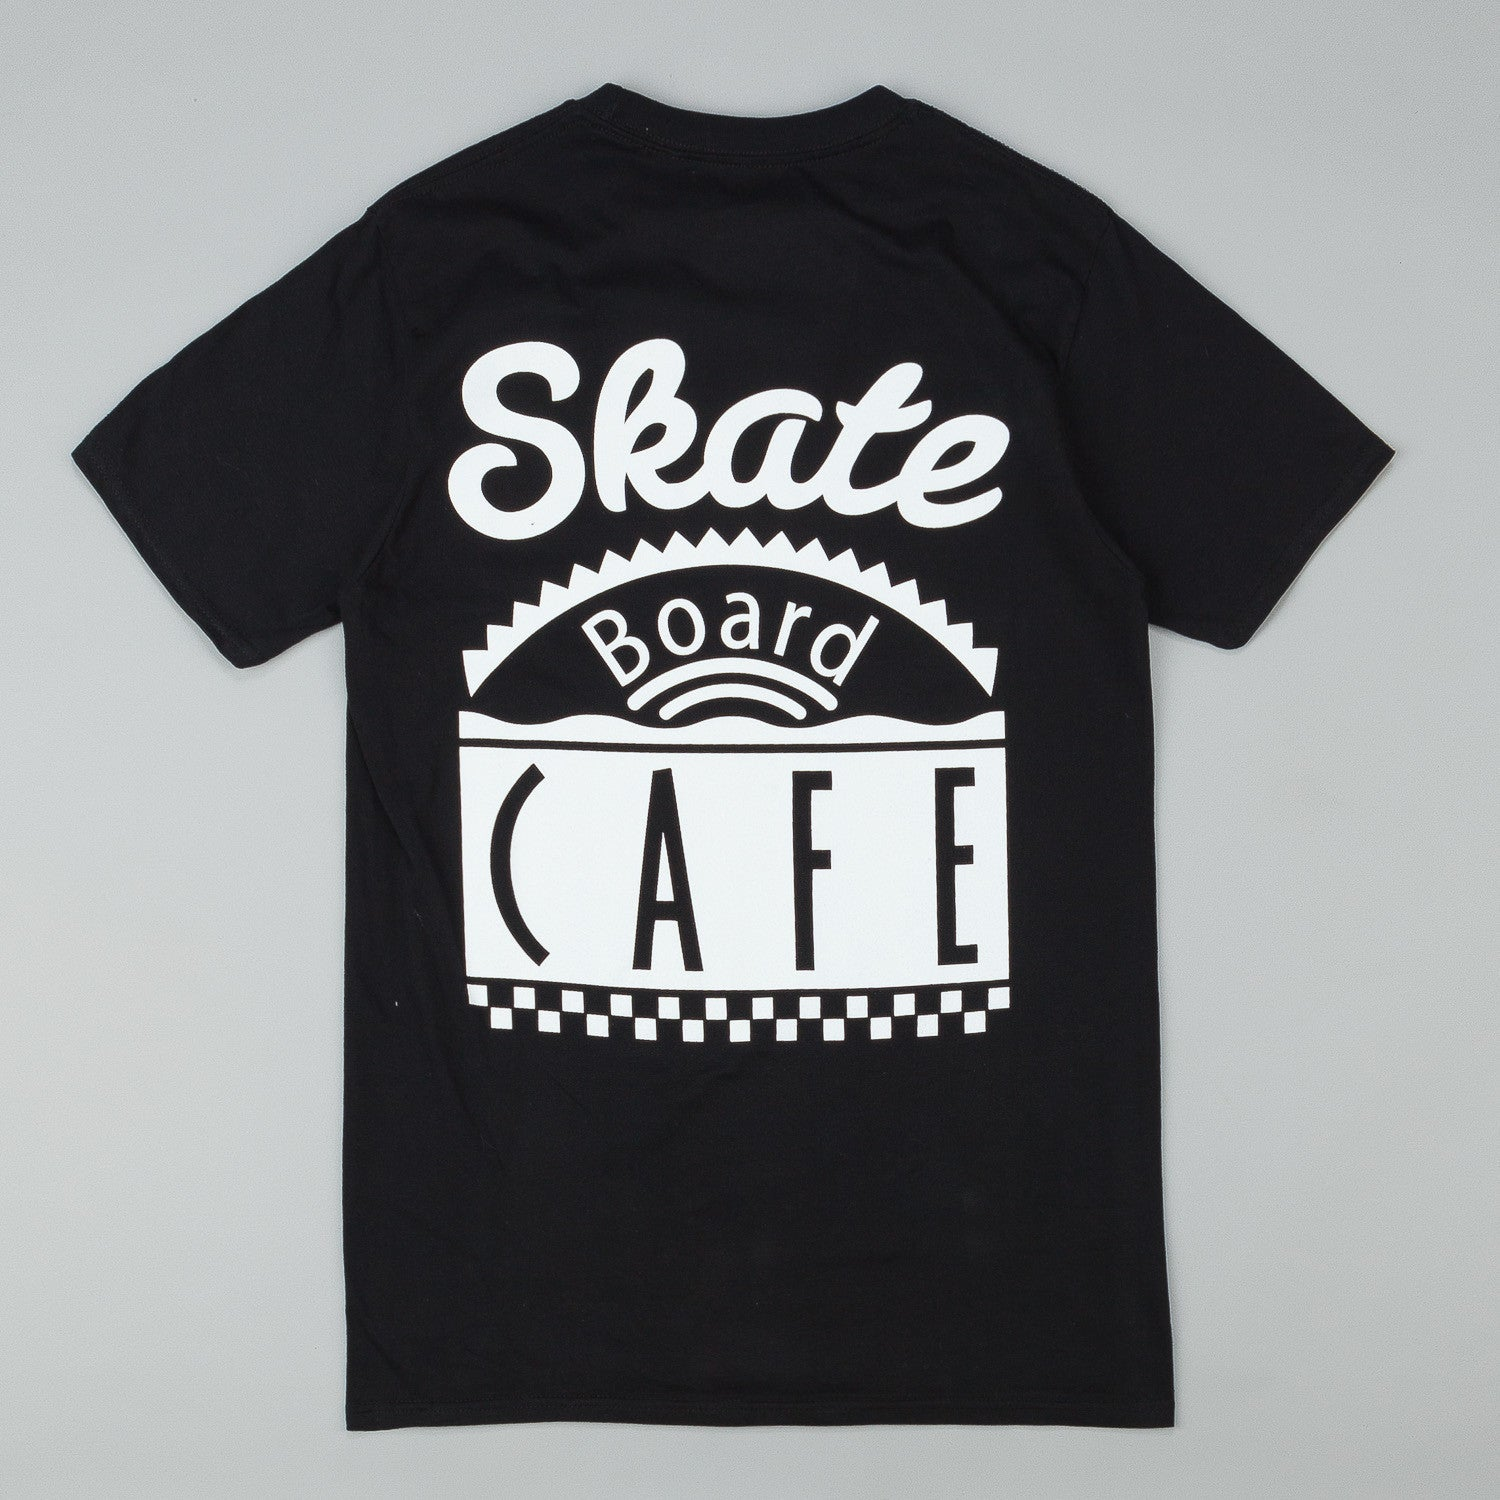 Skateboard Cafe Diner Logo T-Shirt - Black